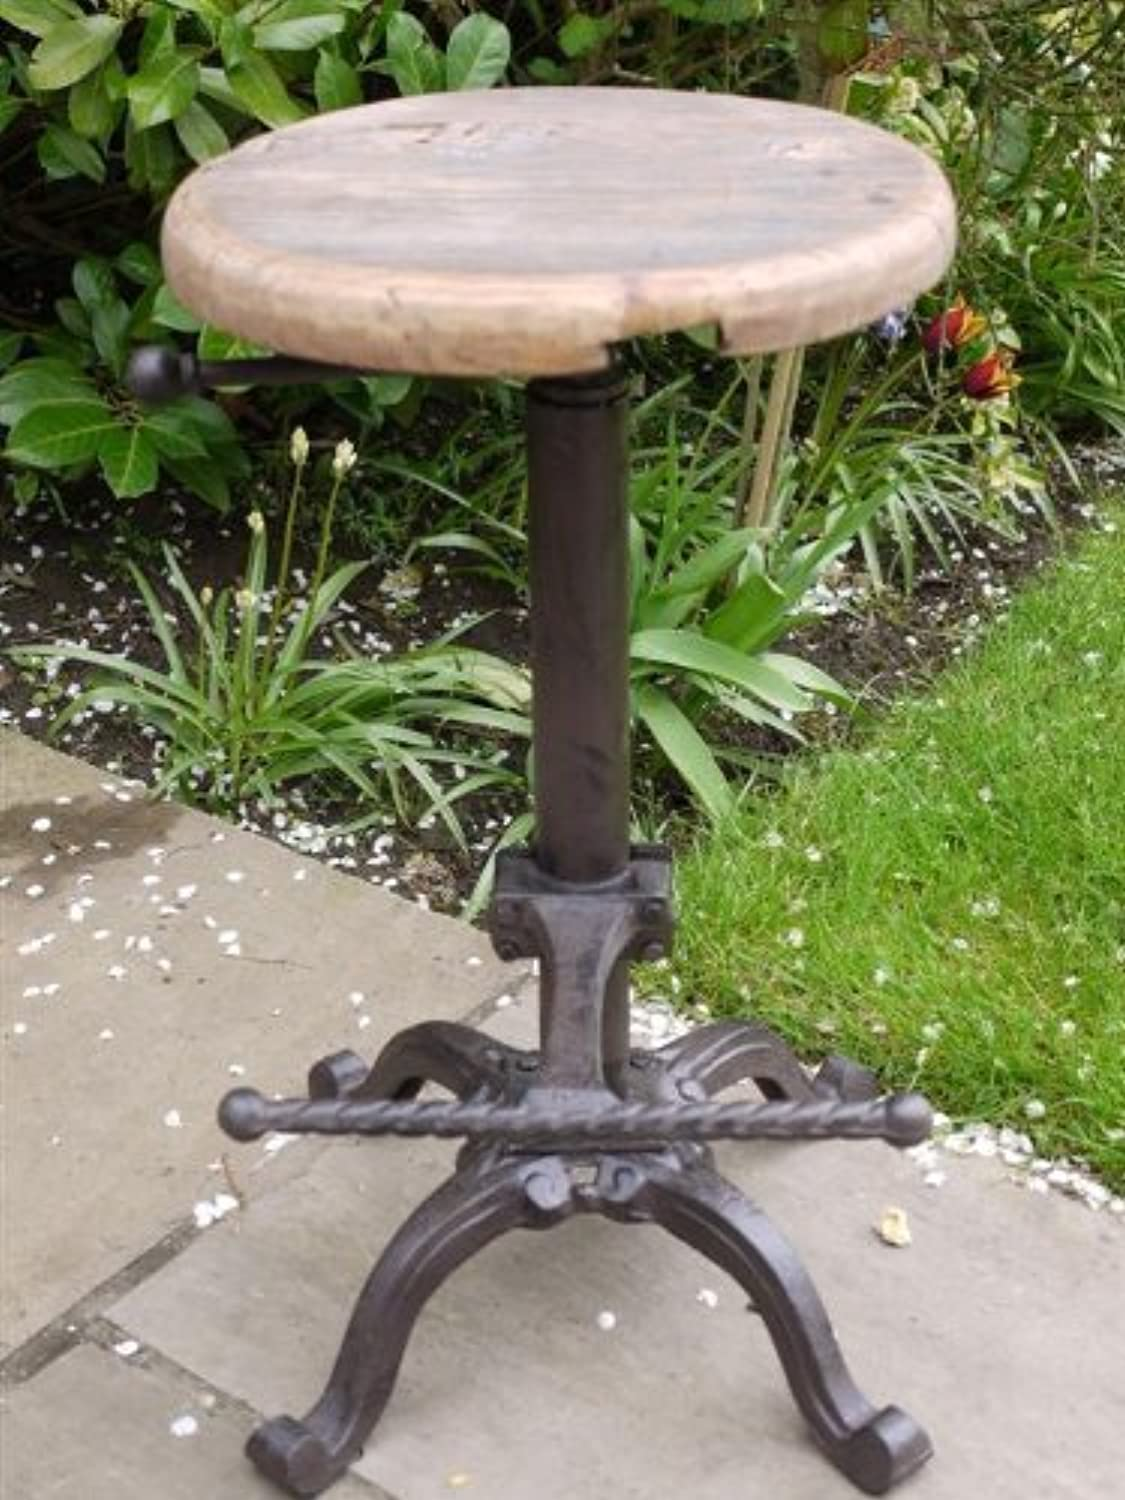 Rustic Tractor Seat Bar Stool Vintage Antique Iron wood Stool for Garden  Kitchen with Wooden Top - Adjustable Height by LS2